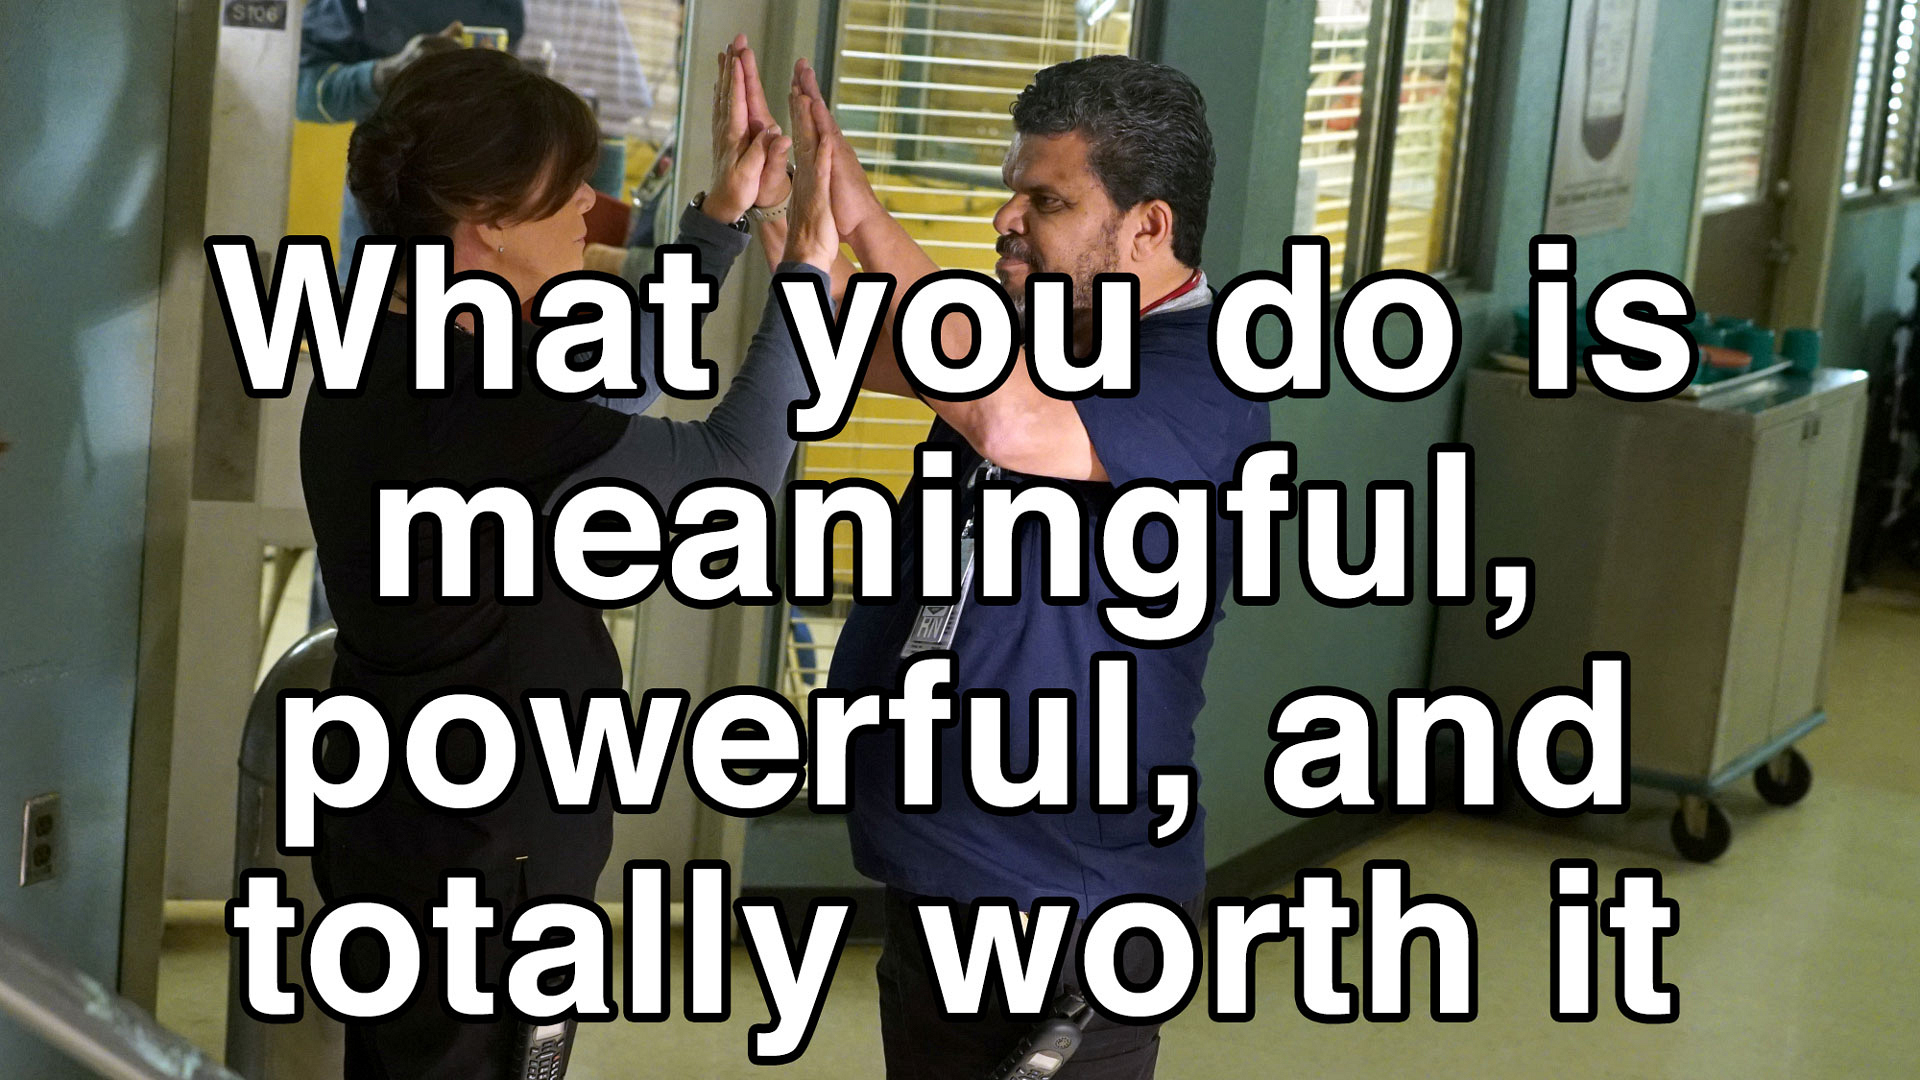 What you do is meaningful, powerful, and totally worth it